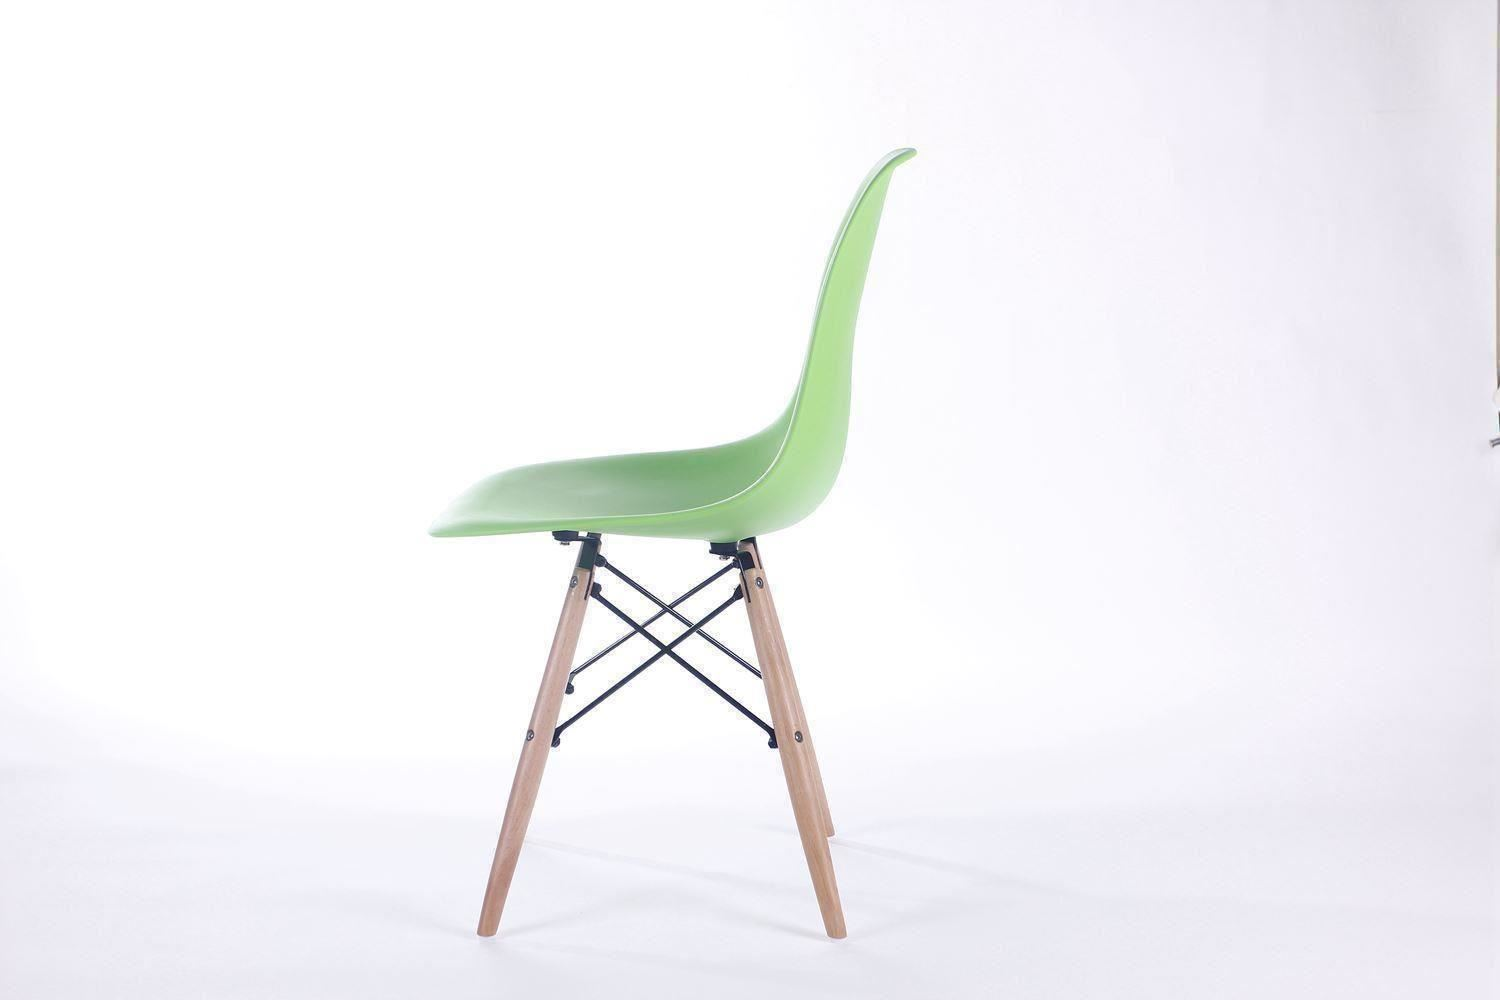 charles ray eames eiffel inspired dsw side dining chair. Black Bedroom Furniture Sets. Home Design Ideas